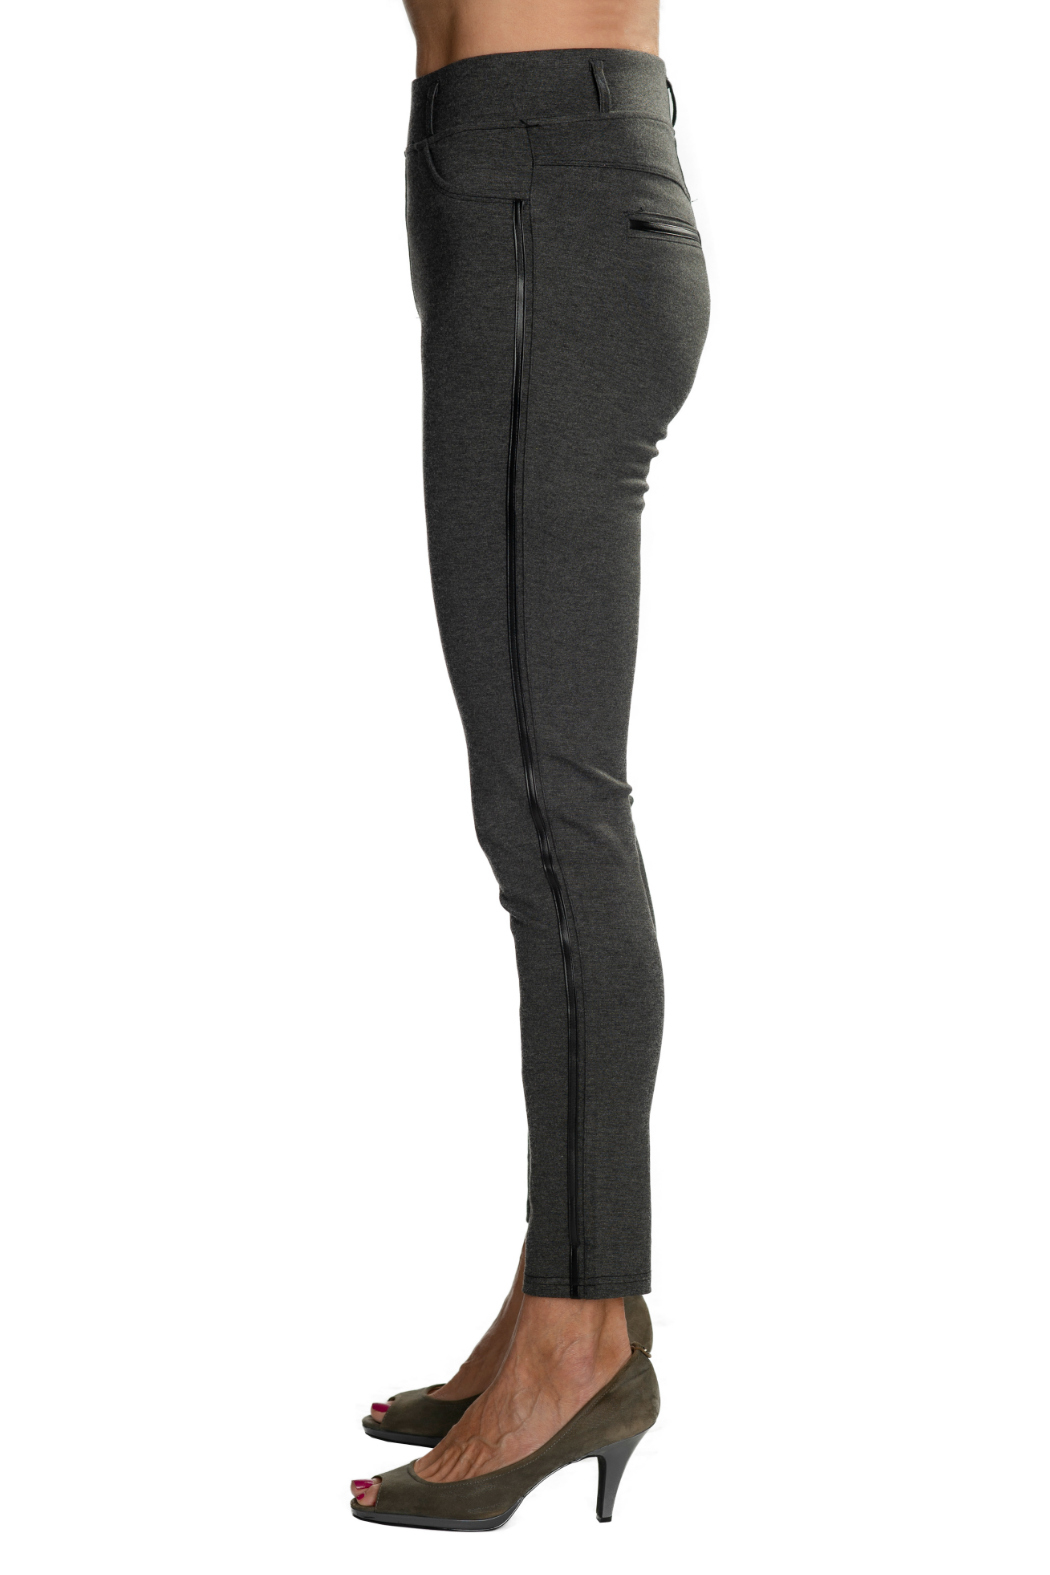 Patrizia Luca Charcoal  pull-on Jegging with Leather Side Stripe - Front Full Image